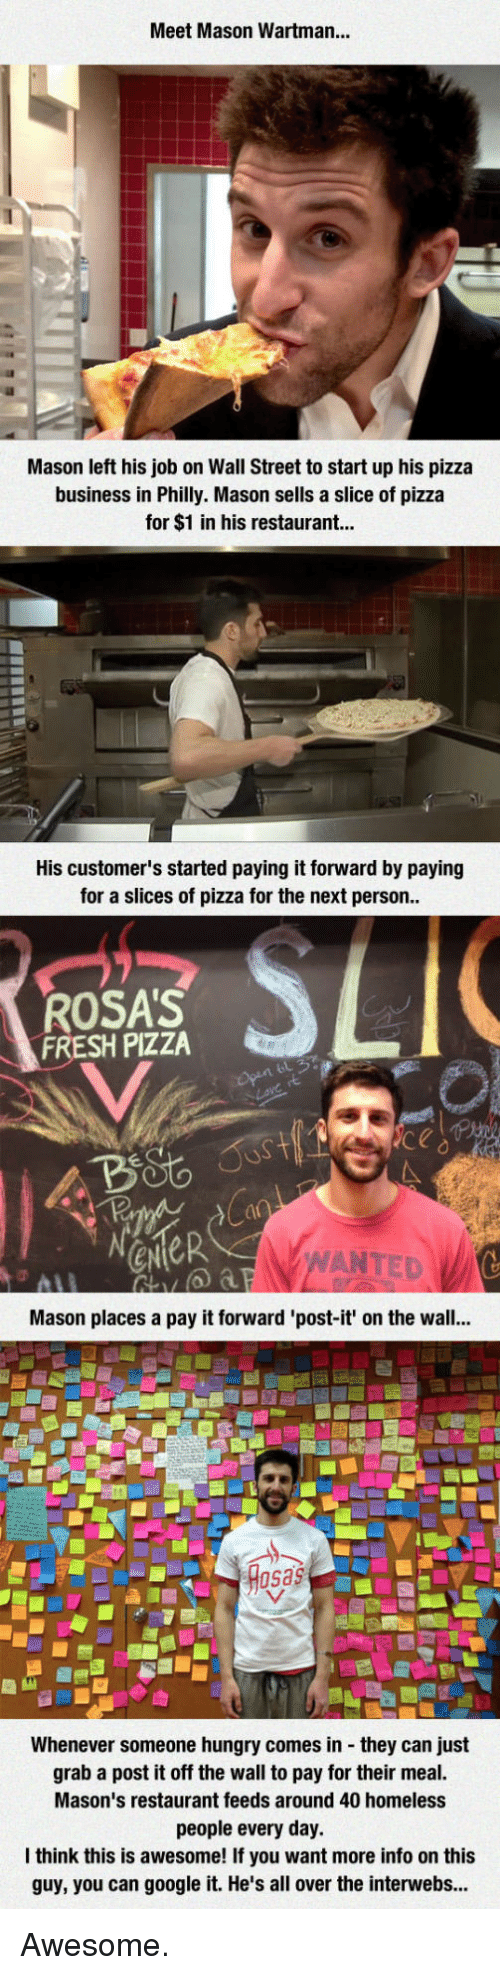 Rosas: Meet Mason Wartman...  Mason left his job on Wall Street to start up his pizza  business in Philly. Mason sells a slice of pizza  for $1 in his restaurant...  His customer's started paying it forward by paying  for a slices of pizza for the next person  ROSA'S  FRESH PIZZA  ANTED  Mason places a pay it forward 'post-it' on the wall...  sas  Whenever someone hungry comes in they can just  grab a post it off the wall to pay for their meal.  Mason's restaurant feeds around 40 homeless  people every day.  think this is awesome! If you want more info on this  guy, you can google it. He's all over the interwebs... Awesome.